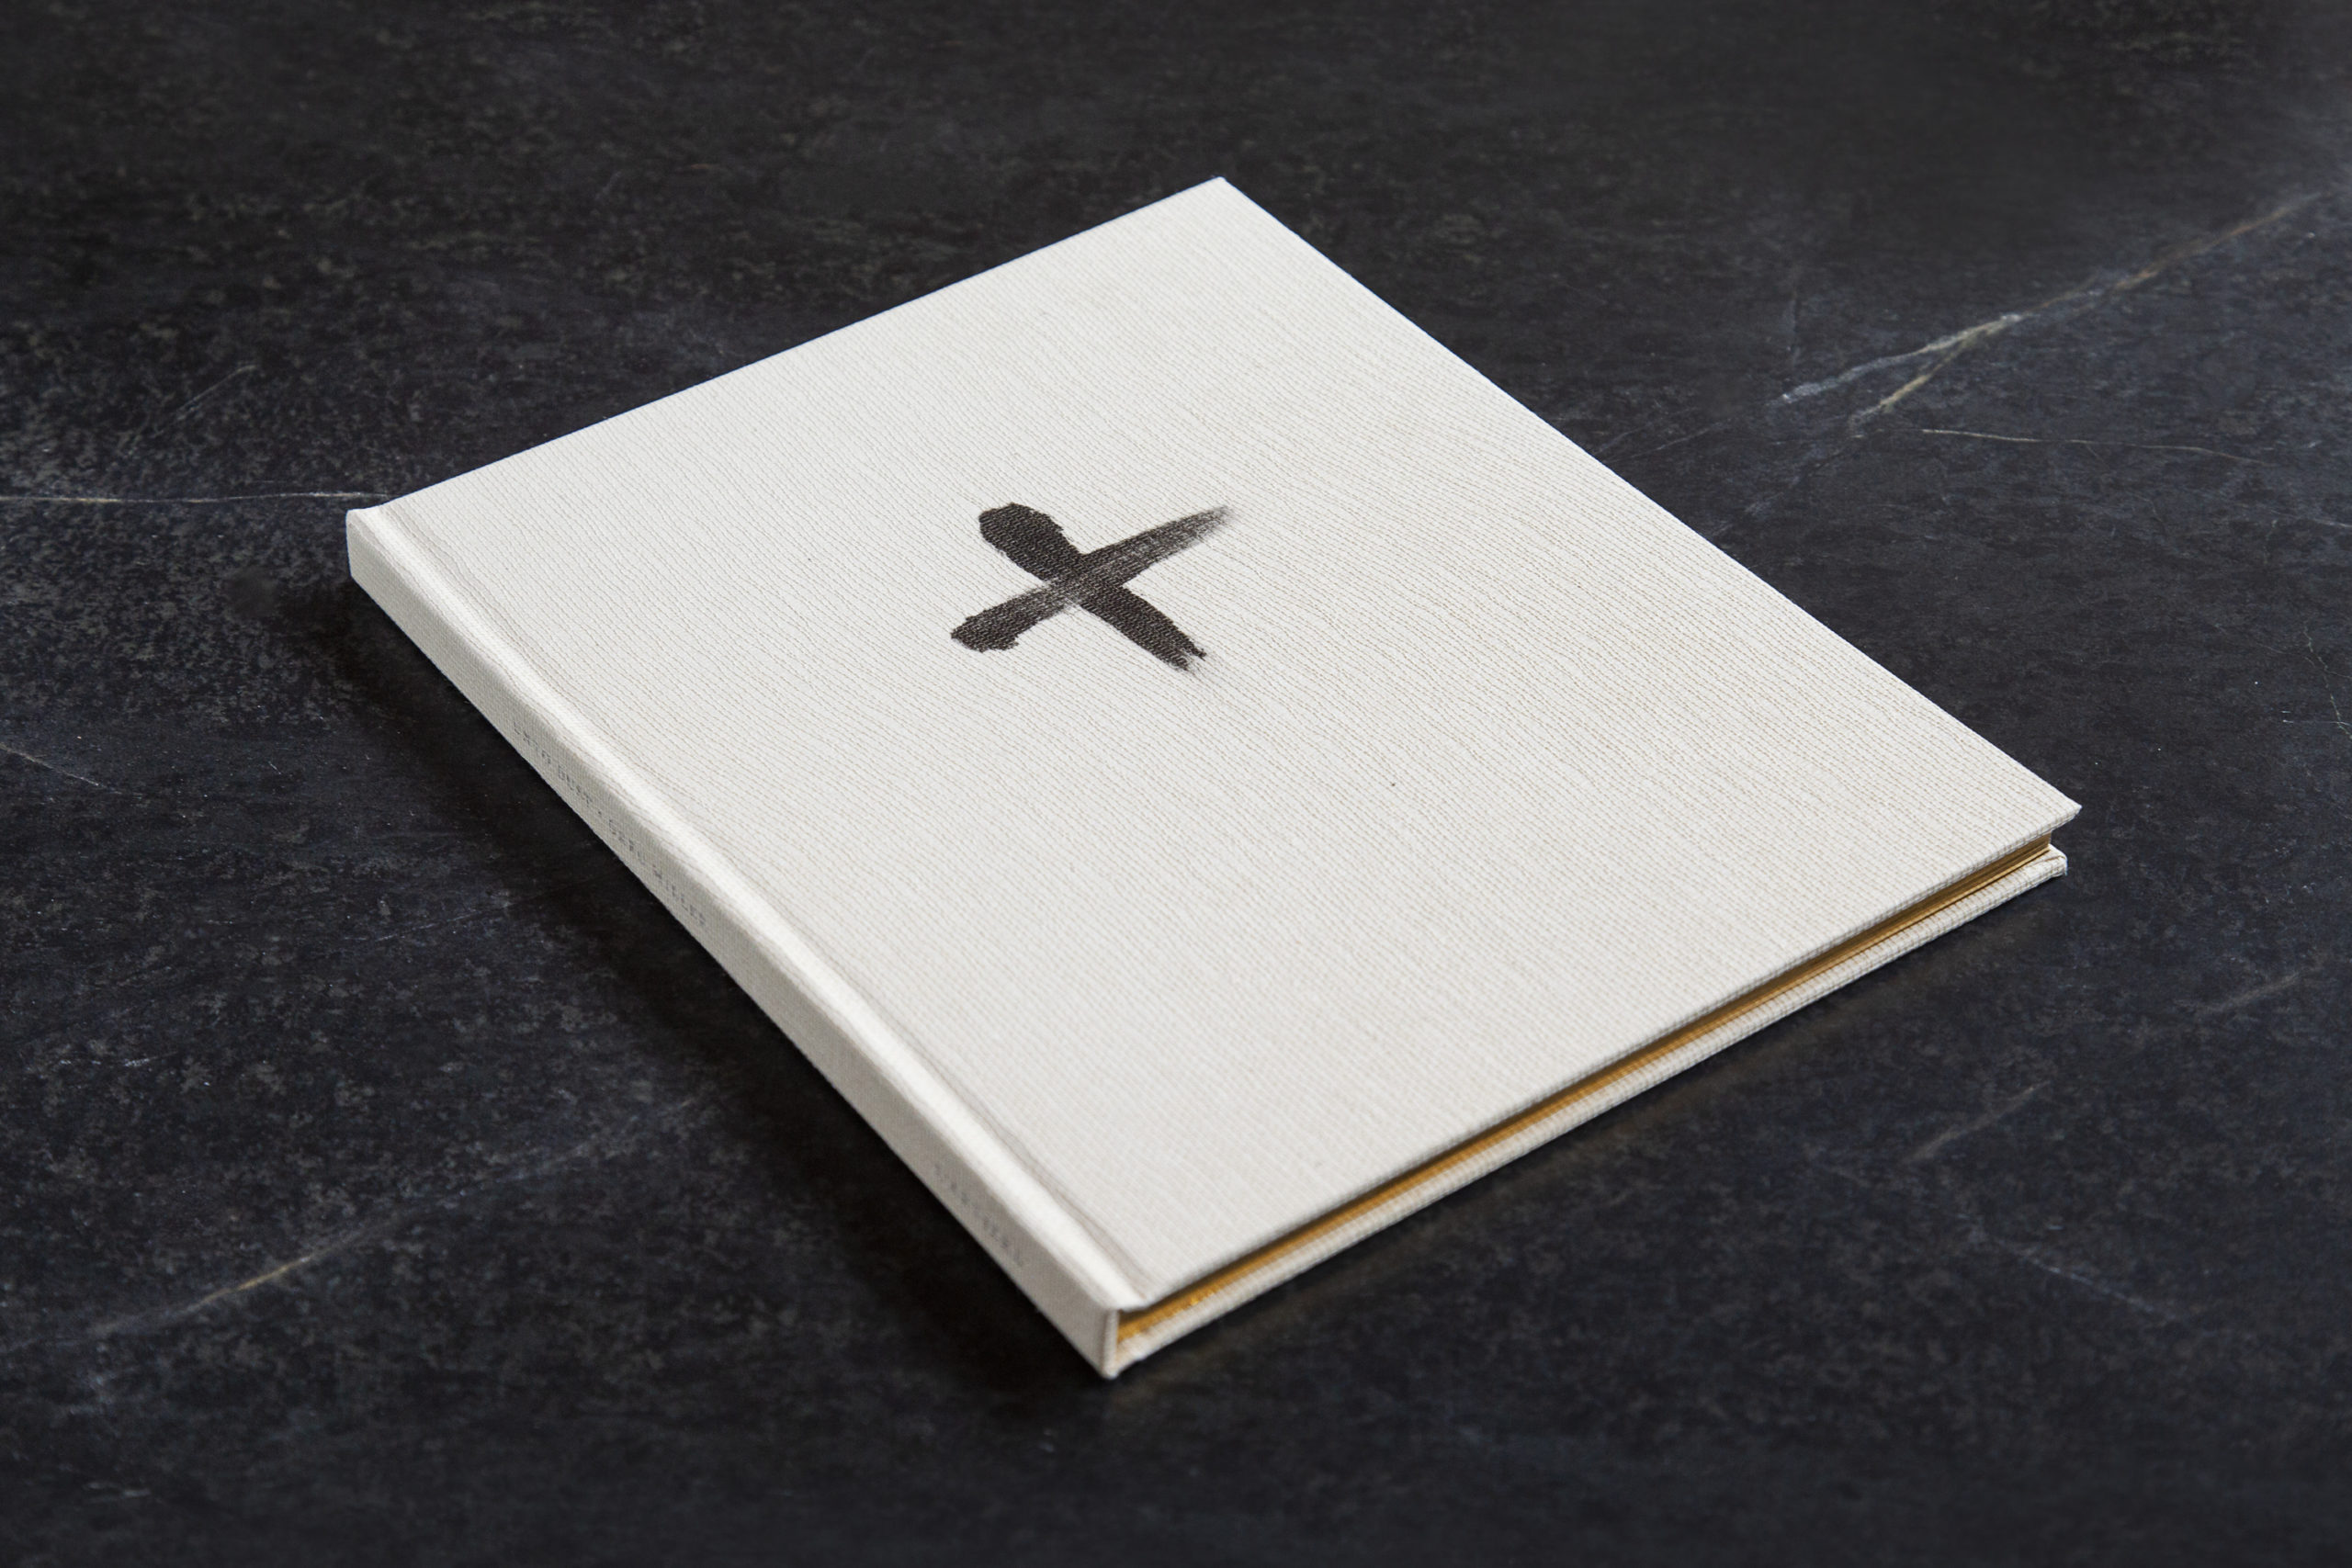 white book with an ash wednesday-like charcoal cross on the cover